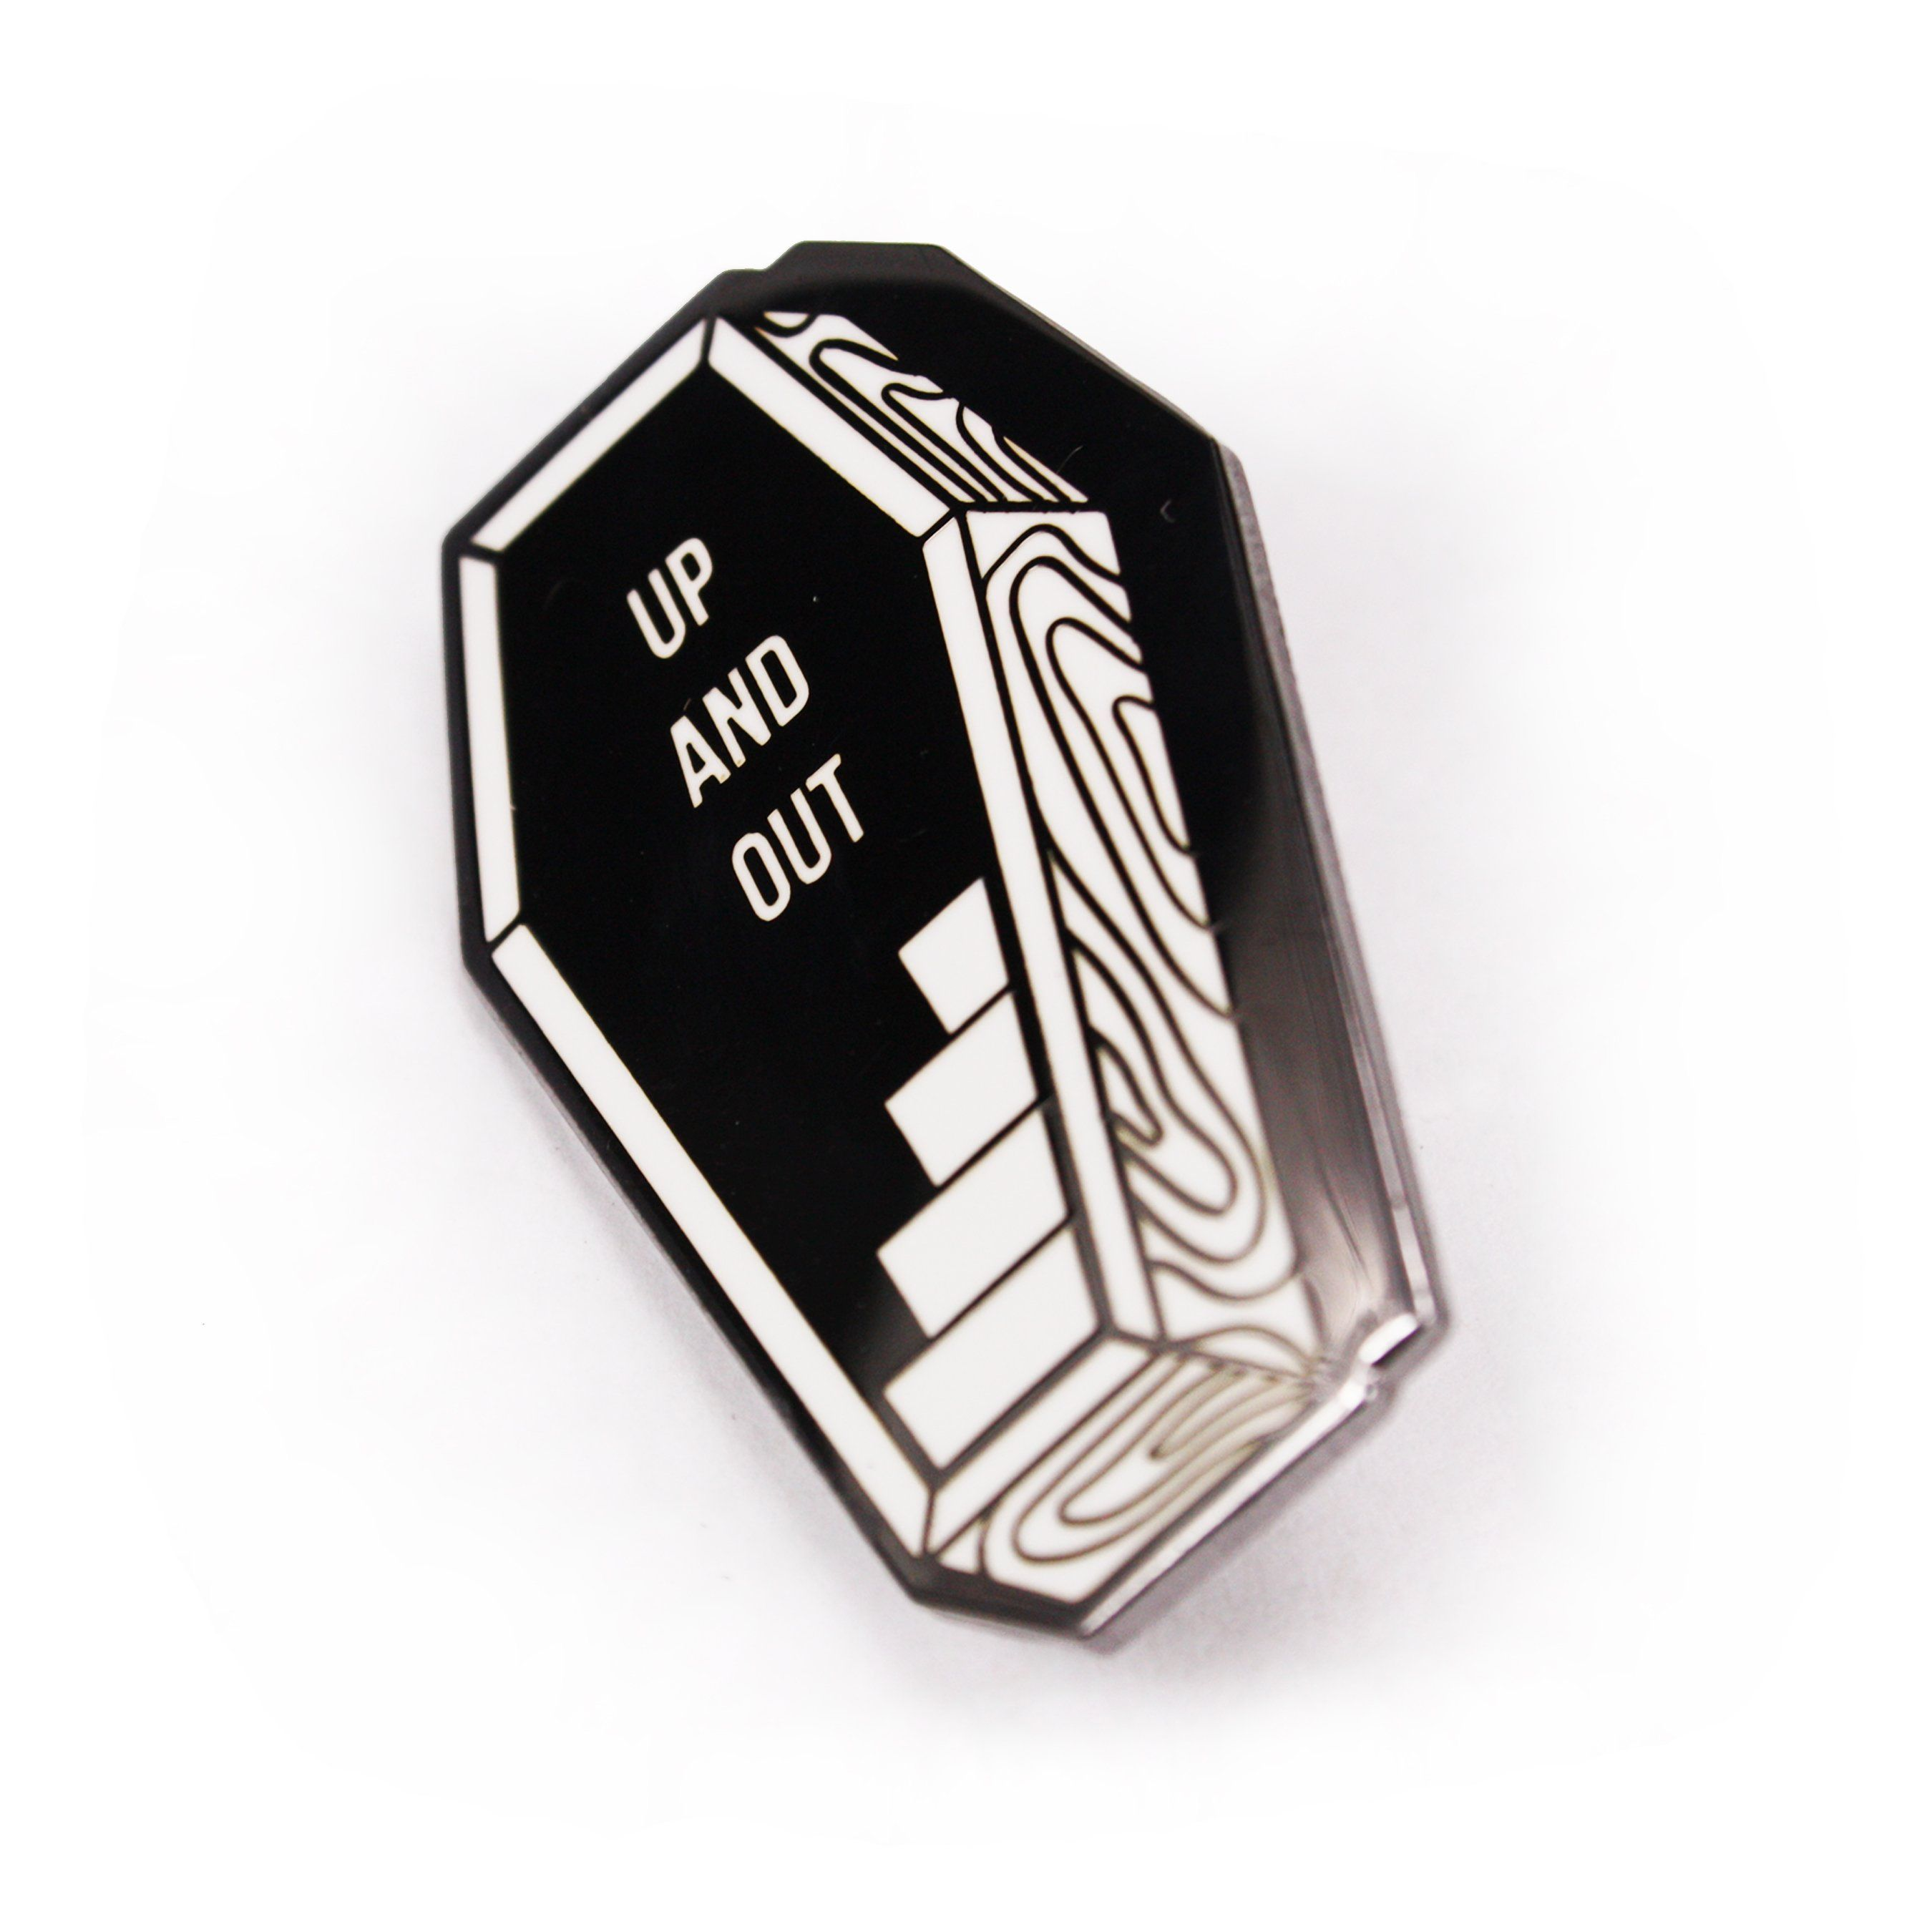 FUNERAL COFFIN UP AND OUT  PIN BY CREEPY CO GOTH HORROR